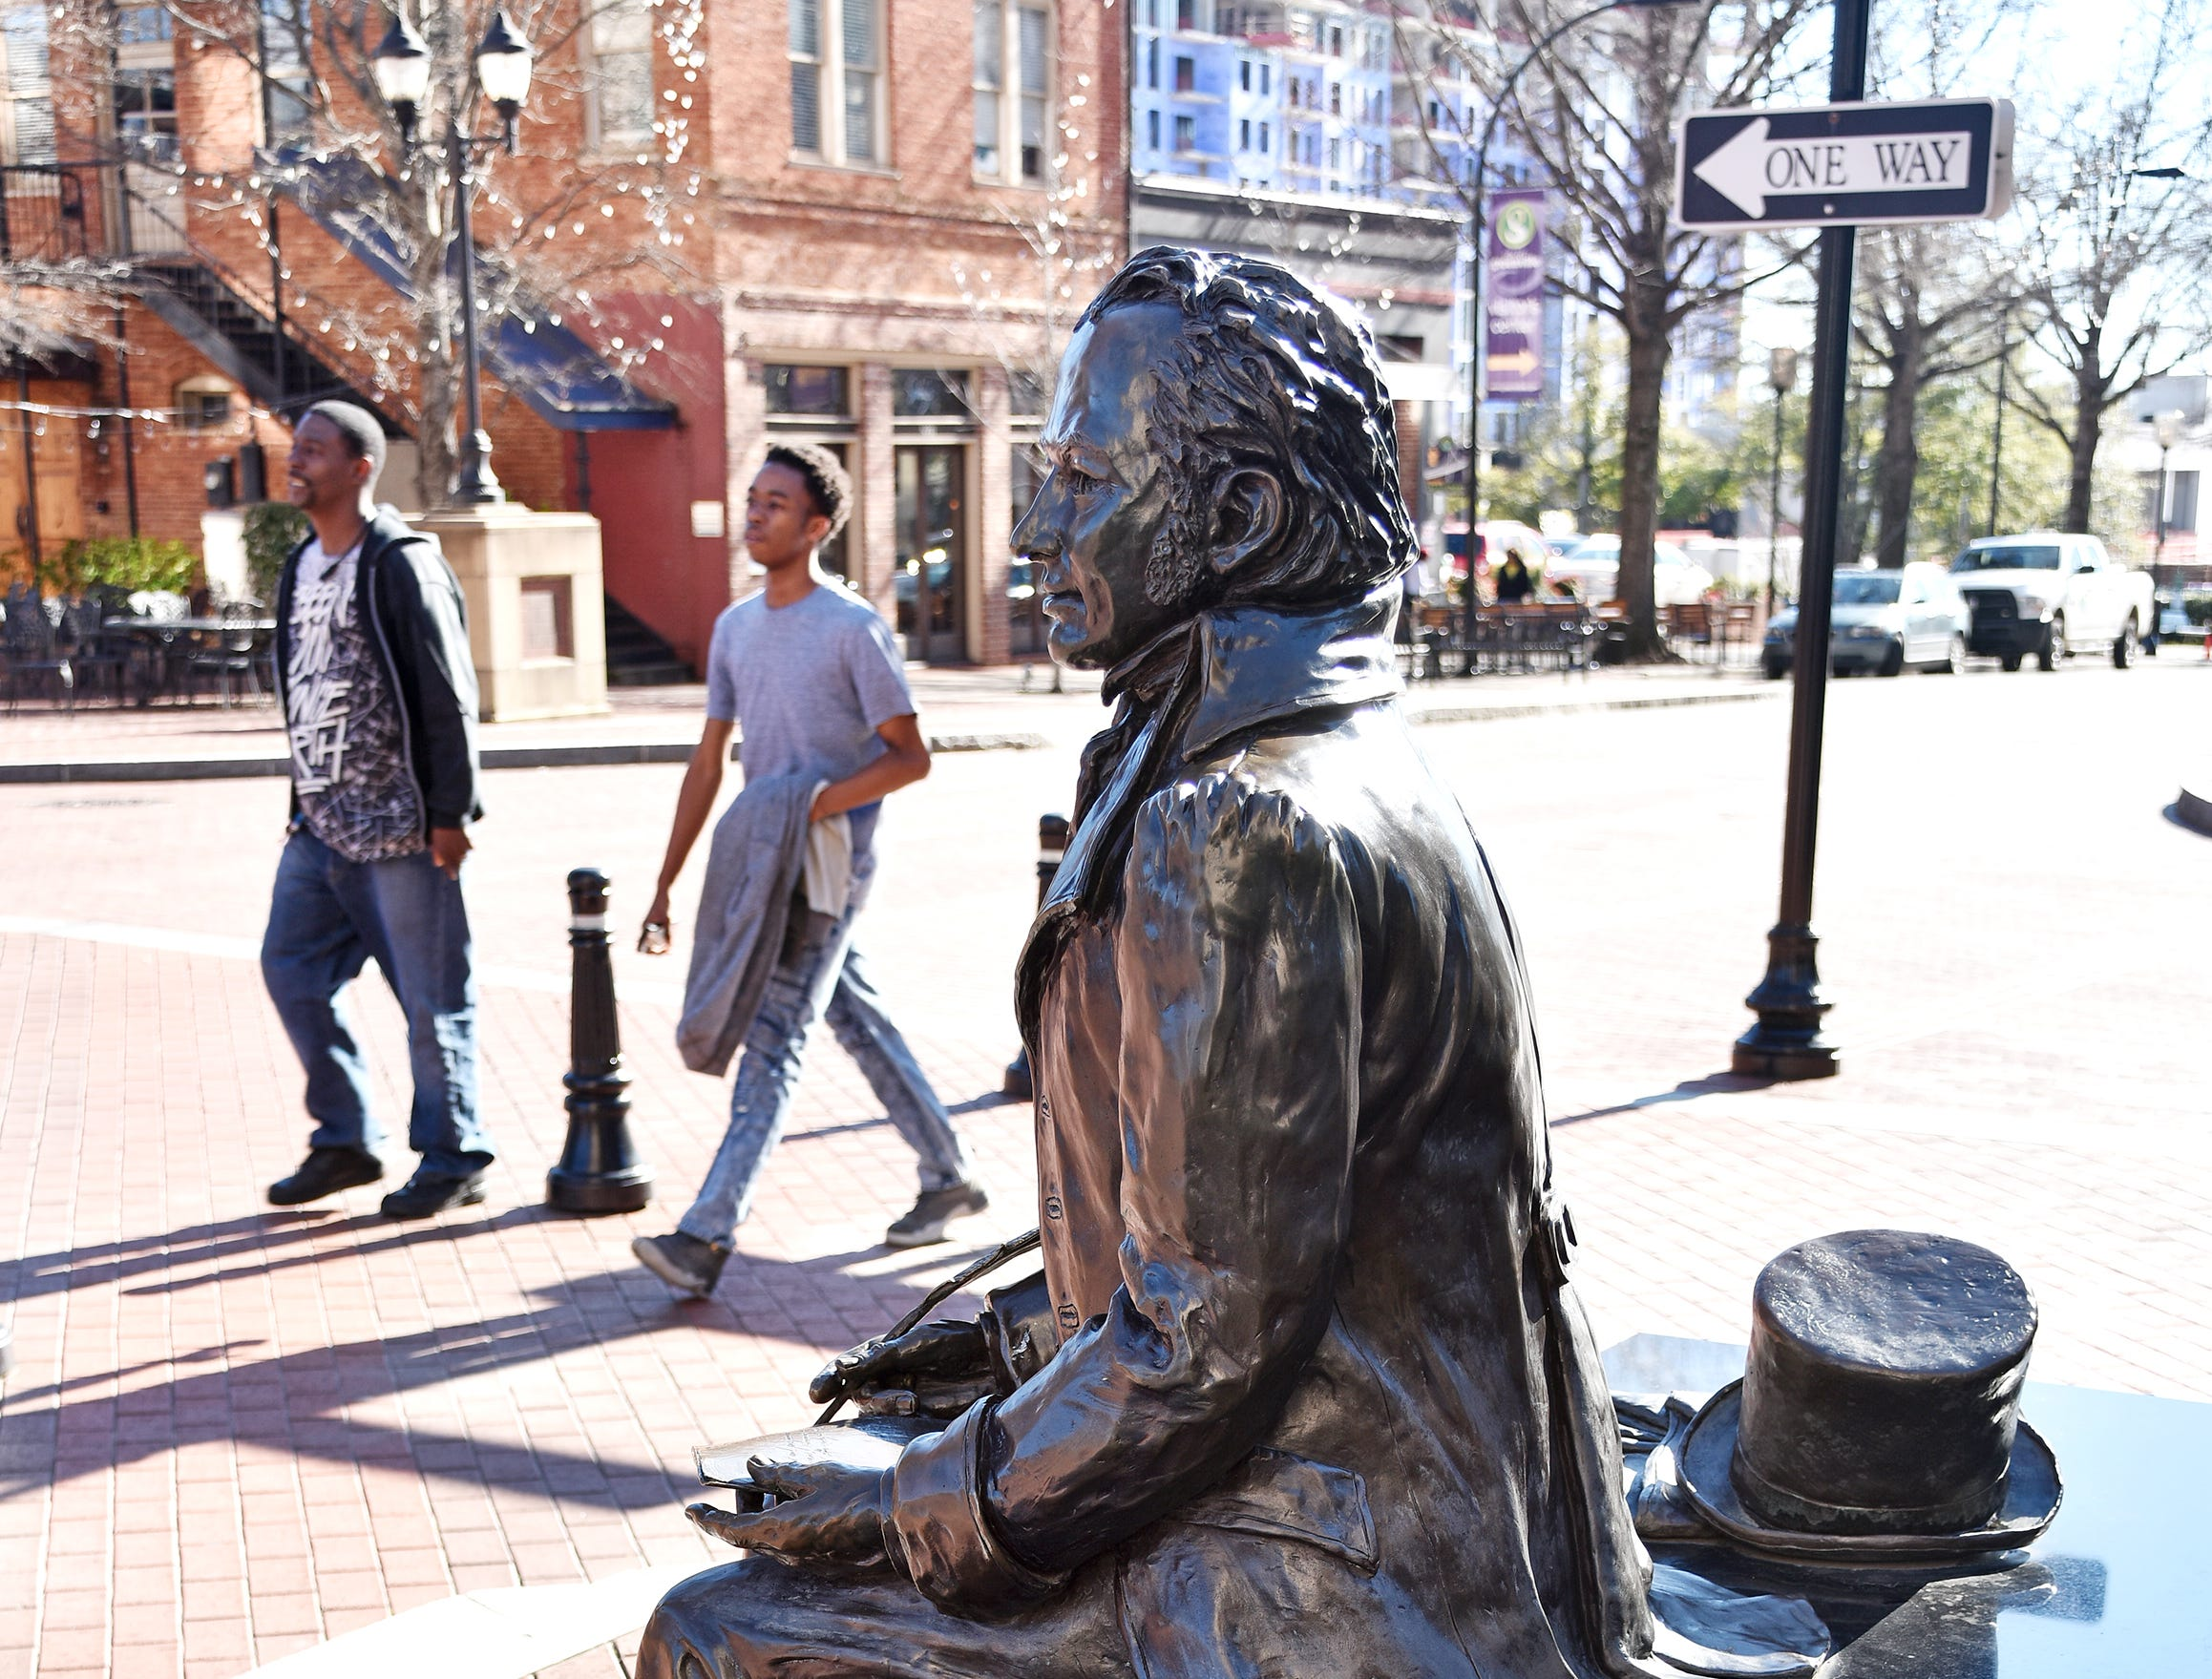 Joel Poinsett by Zan Wells was installed at the site of a historic speech made by Poinsett on July 4, 1851, and near one of his namesakes, the Westin Poinsett Hotel.